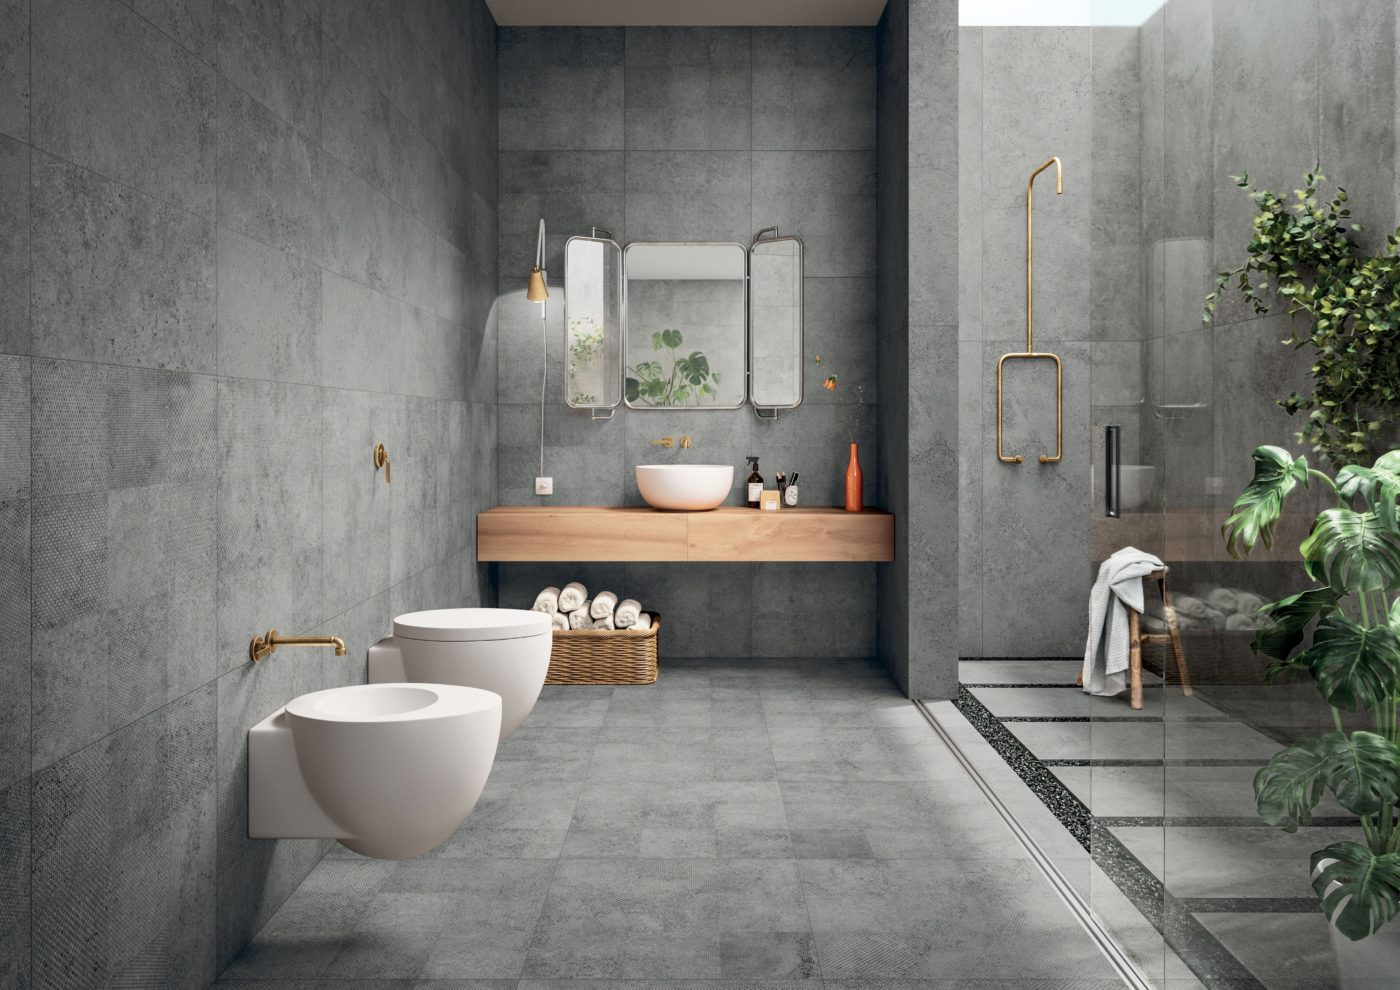 Grey Bathroom Ideas For Clean Urban House Styles: How To Design The Ultimate Bathroom